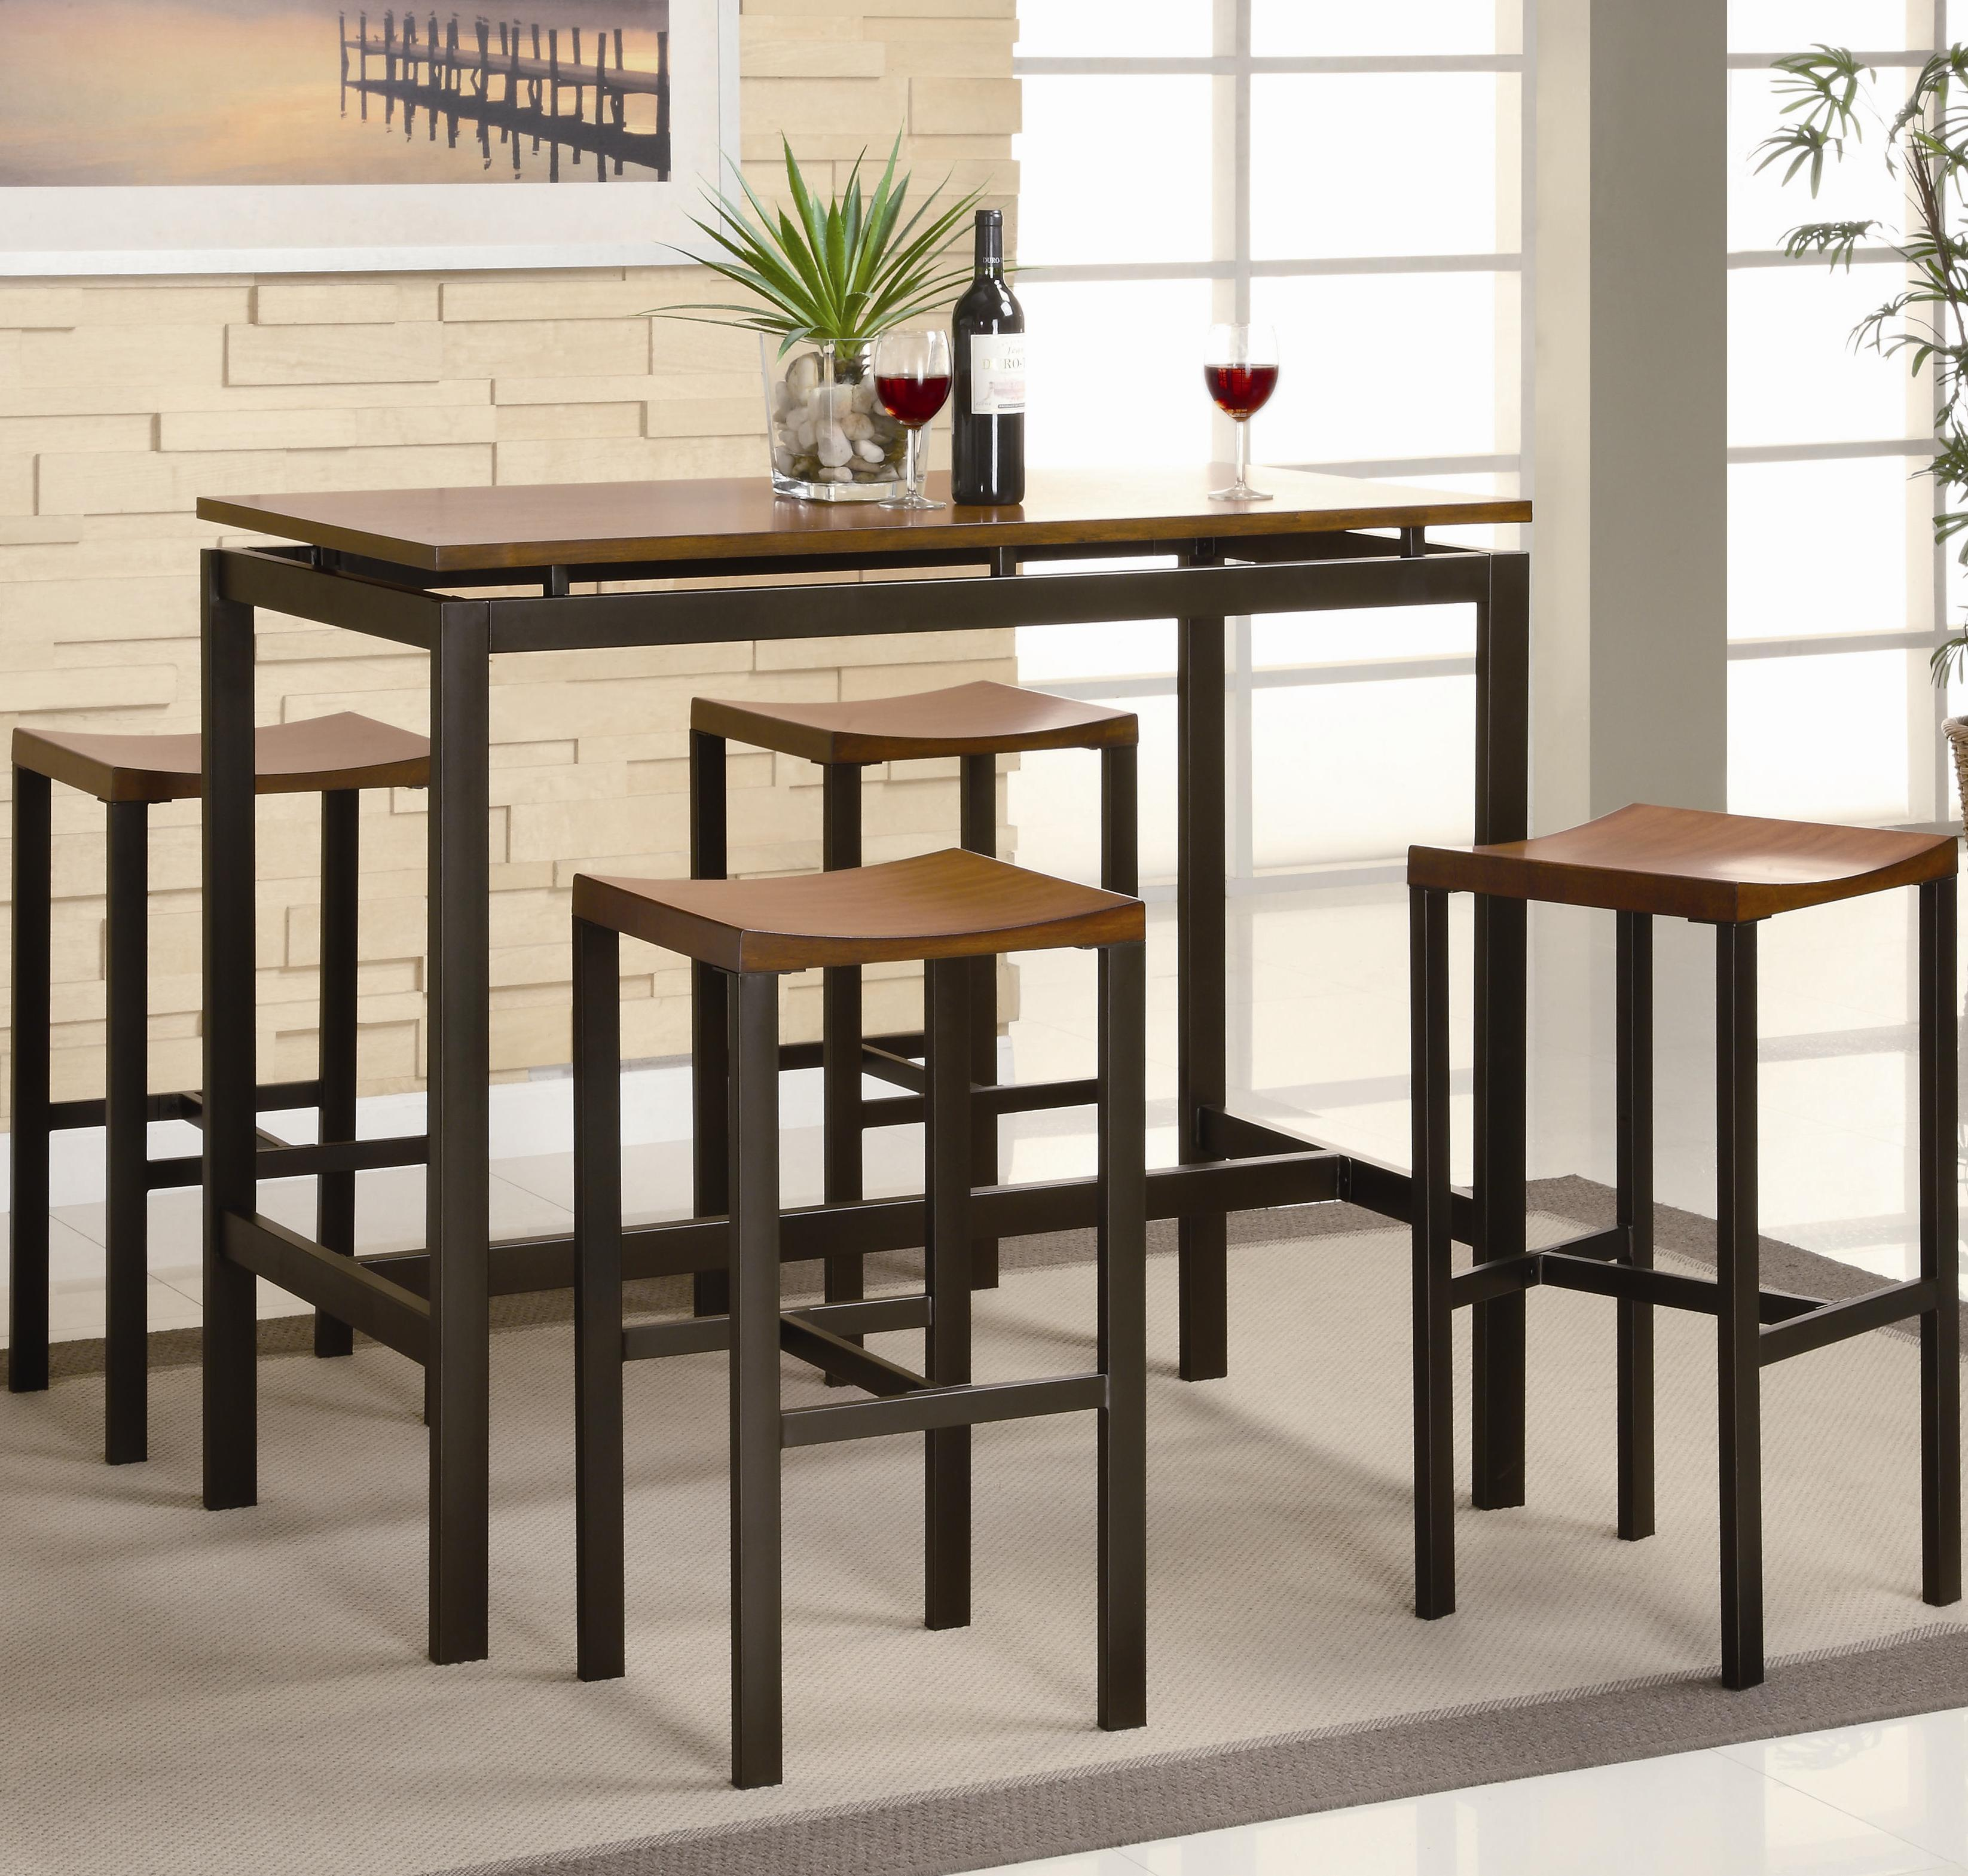 coaster atlus 150097 5 piece counter height dining set northeast factory direct pub table. Black Bedroom Furniture Sets. Home Design Ideas